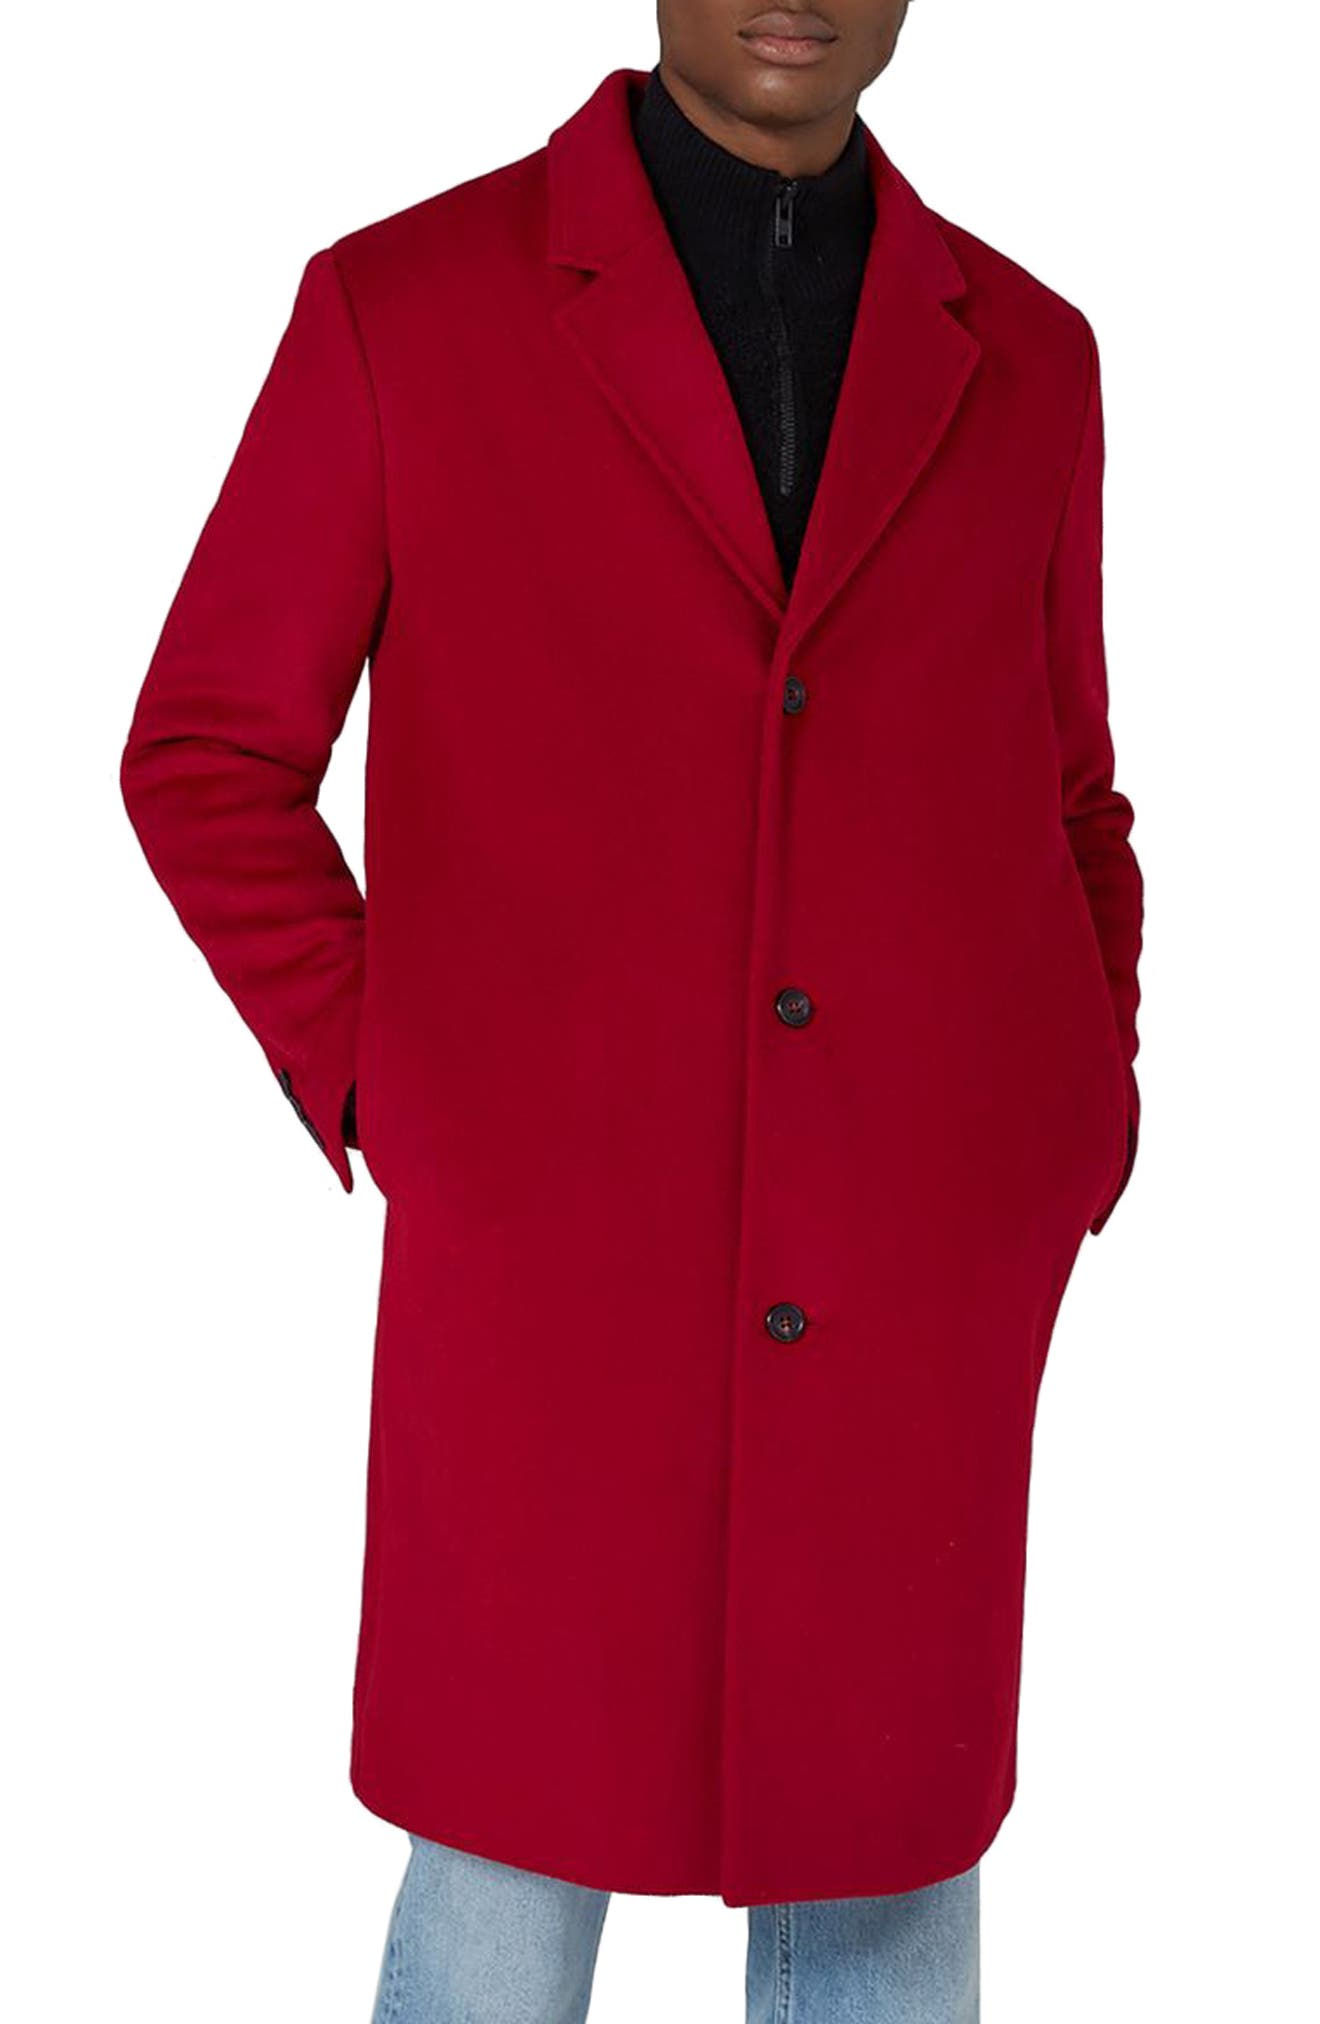 Oversized Single Breasted Coat,                             Main thumbnail 1, color,                             Red